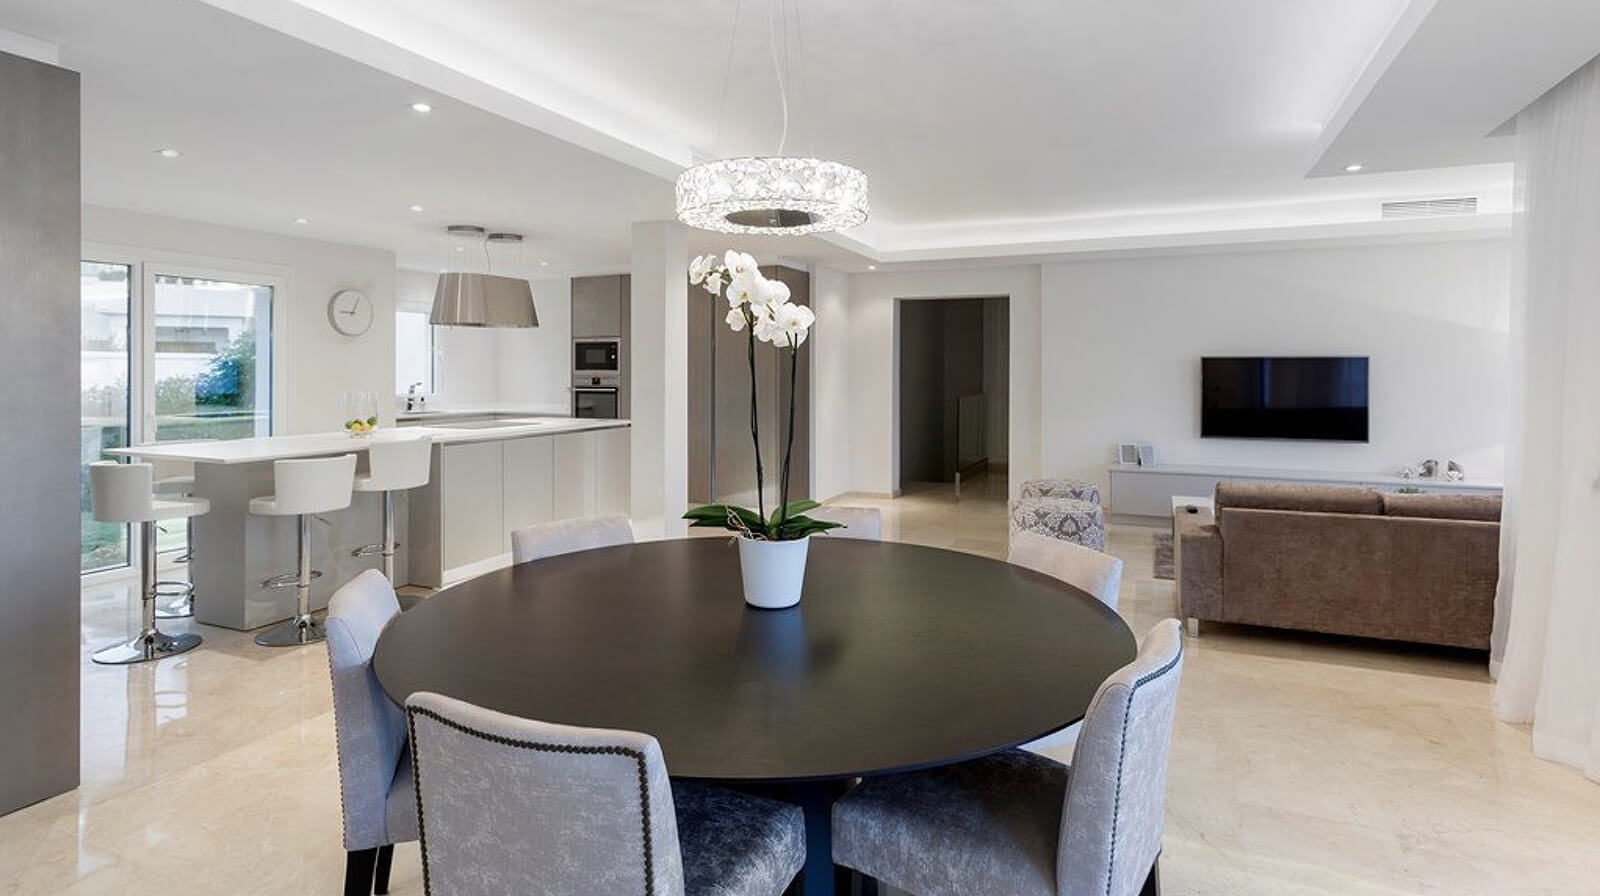 Contemporary Villa Renovation dining table